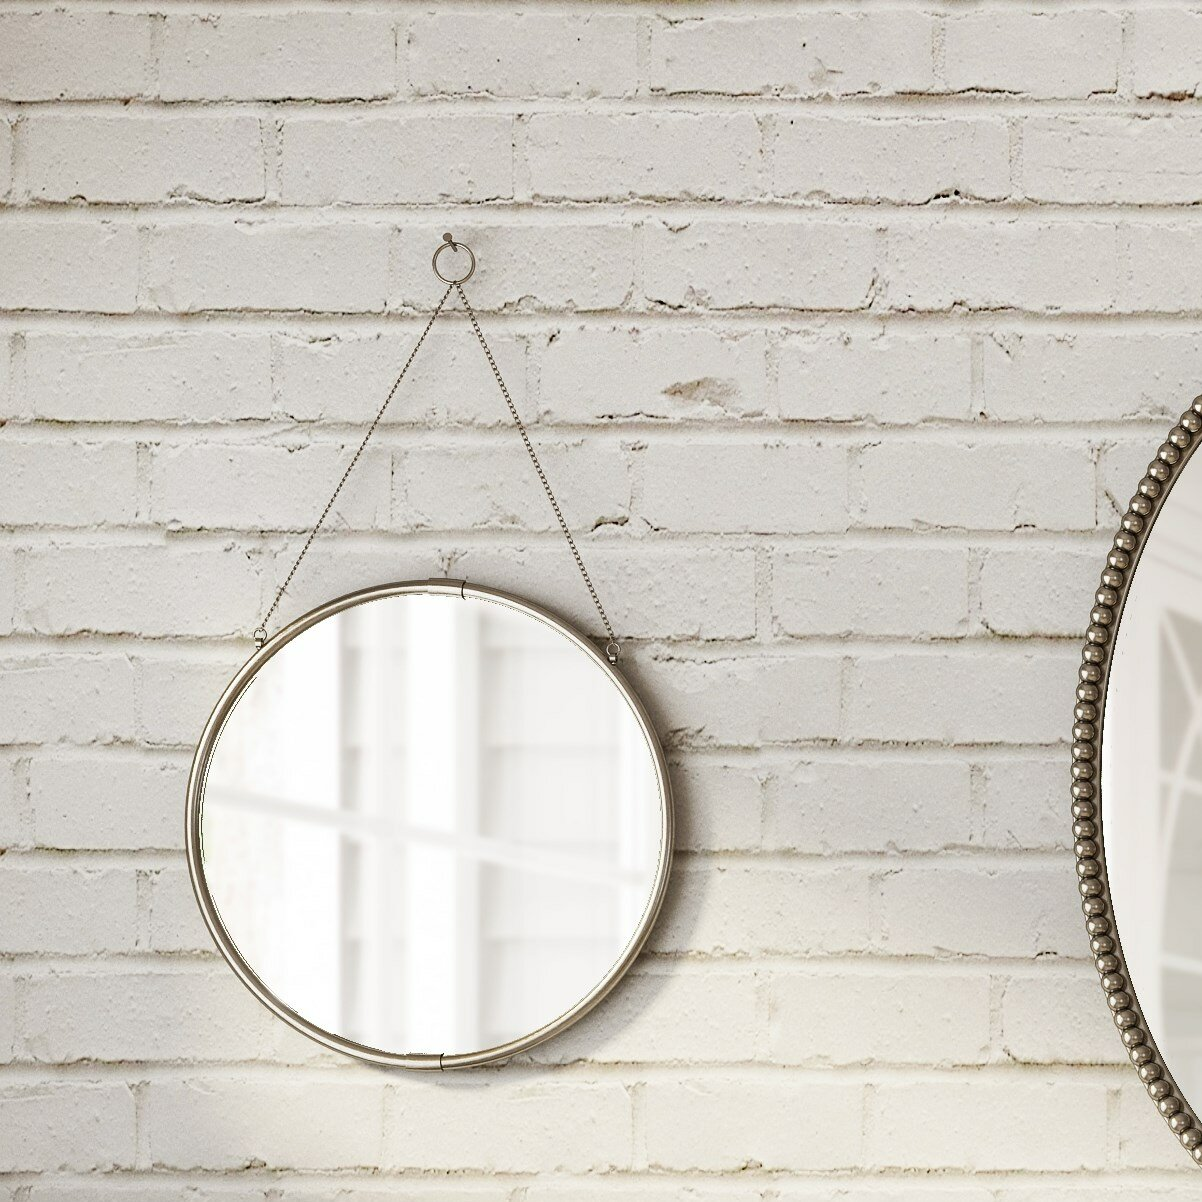 Heckstall Decorative Round Hanging Modern Contemporary Wall Mirror